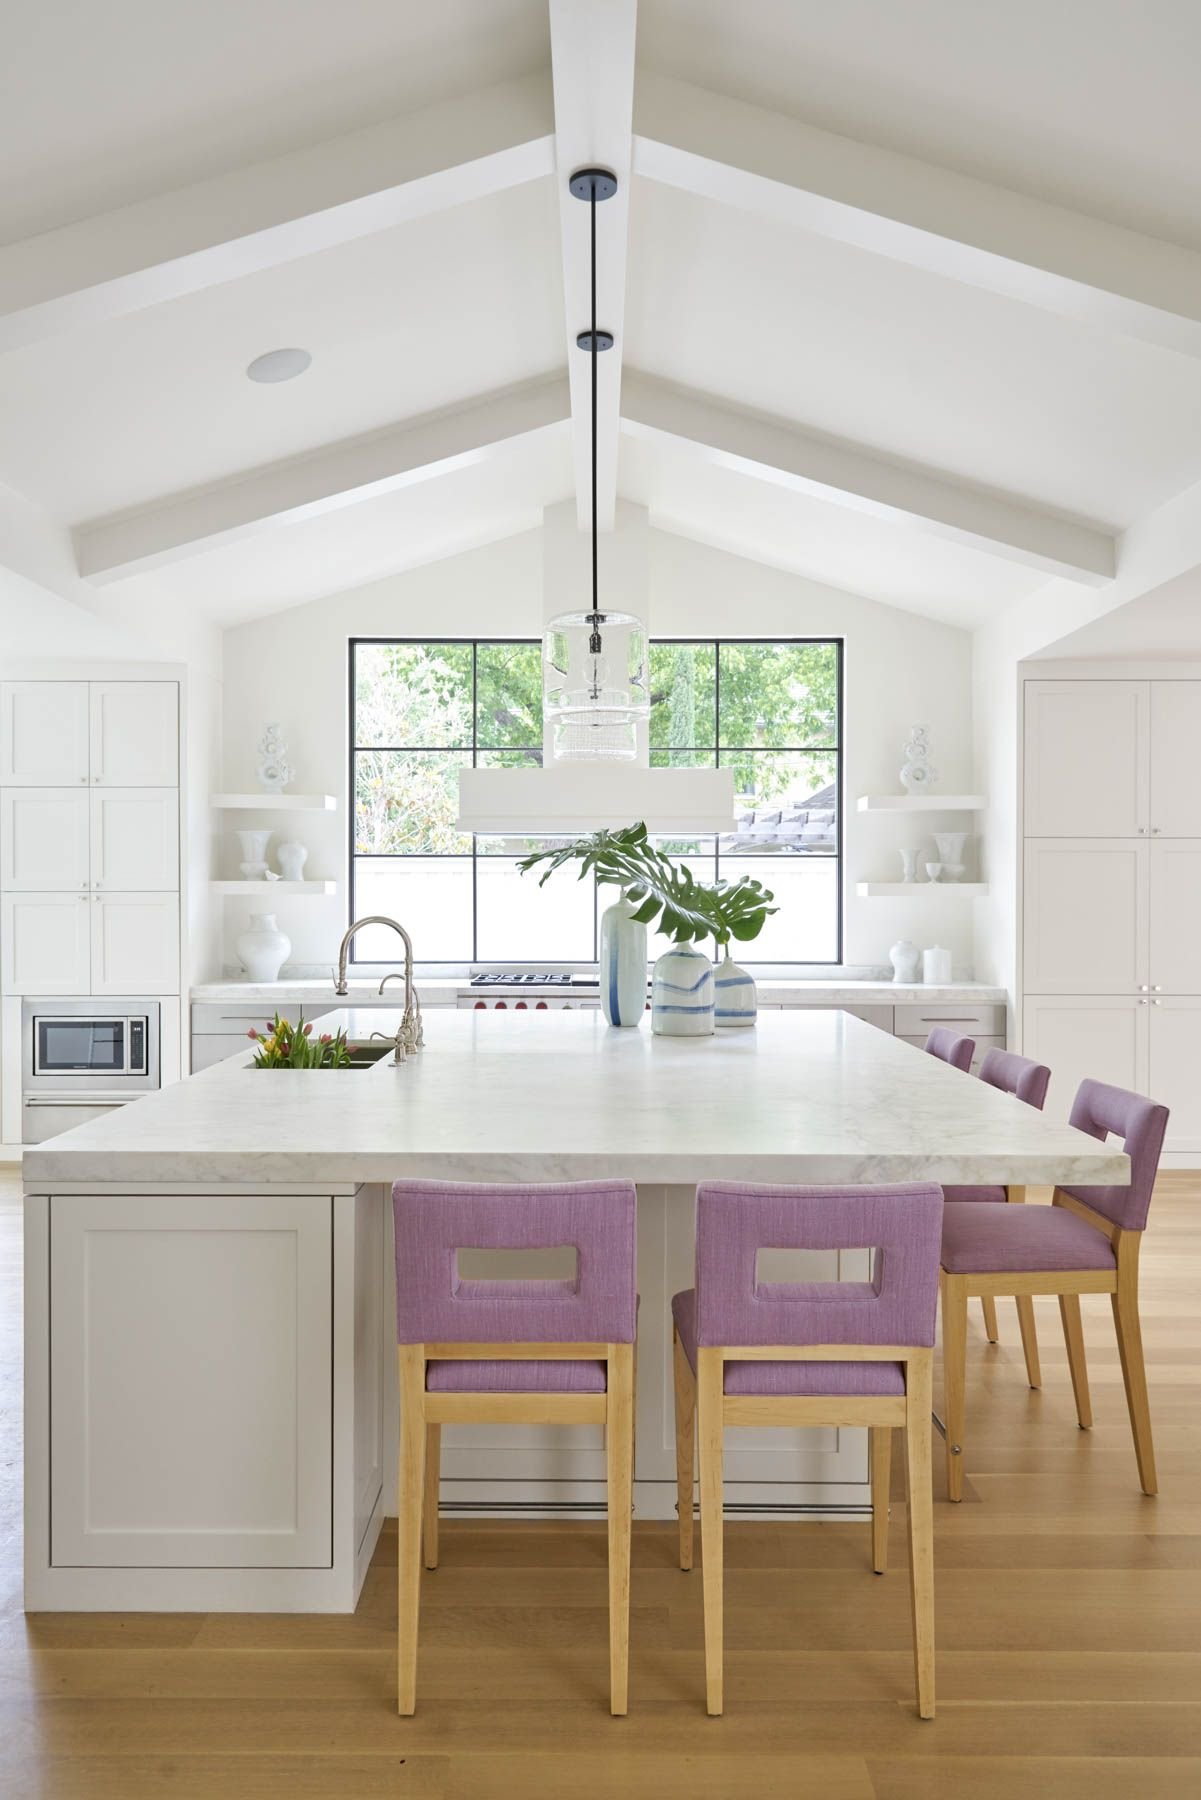 Best White Kitchen With Large Island And Lavender Barstools 400 x 300